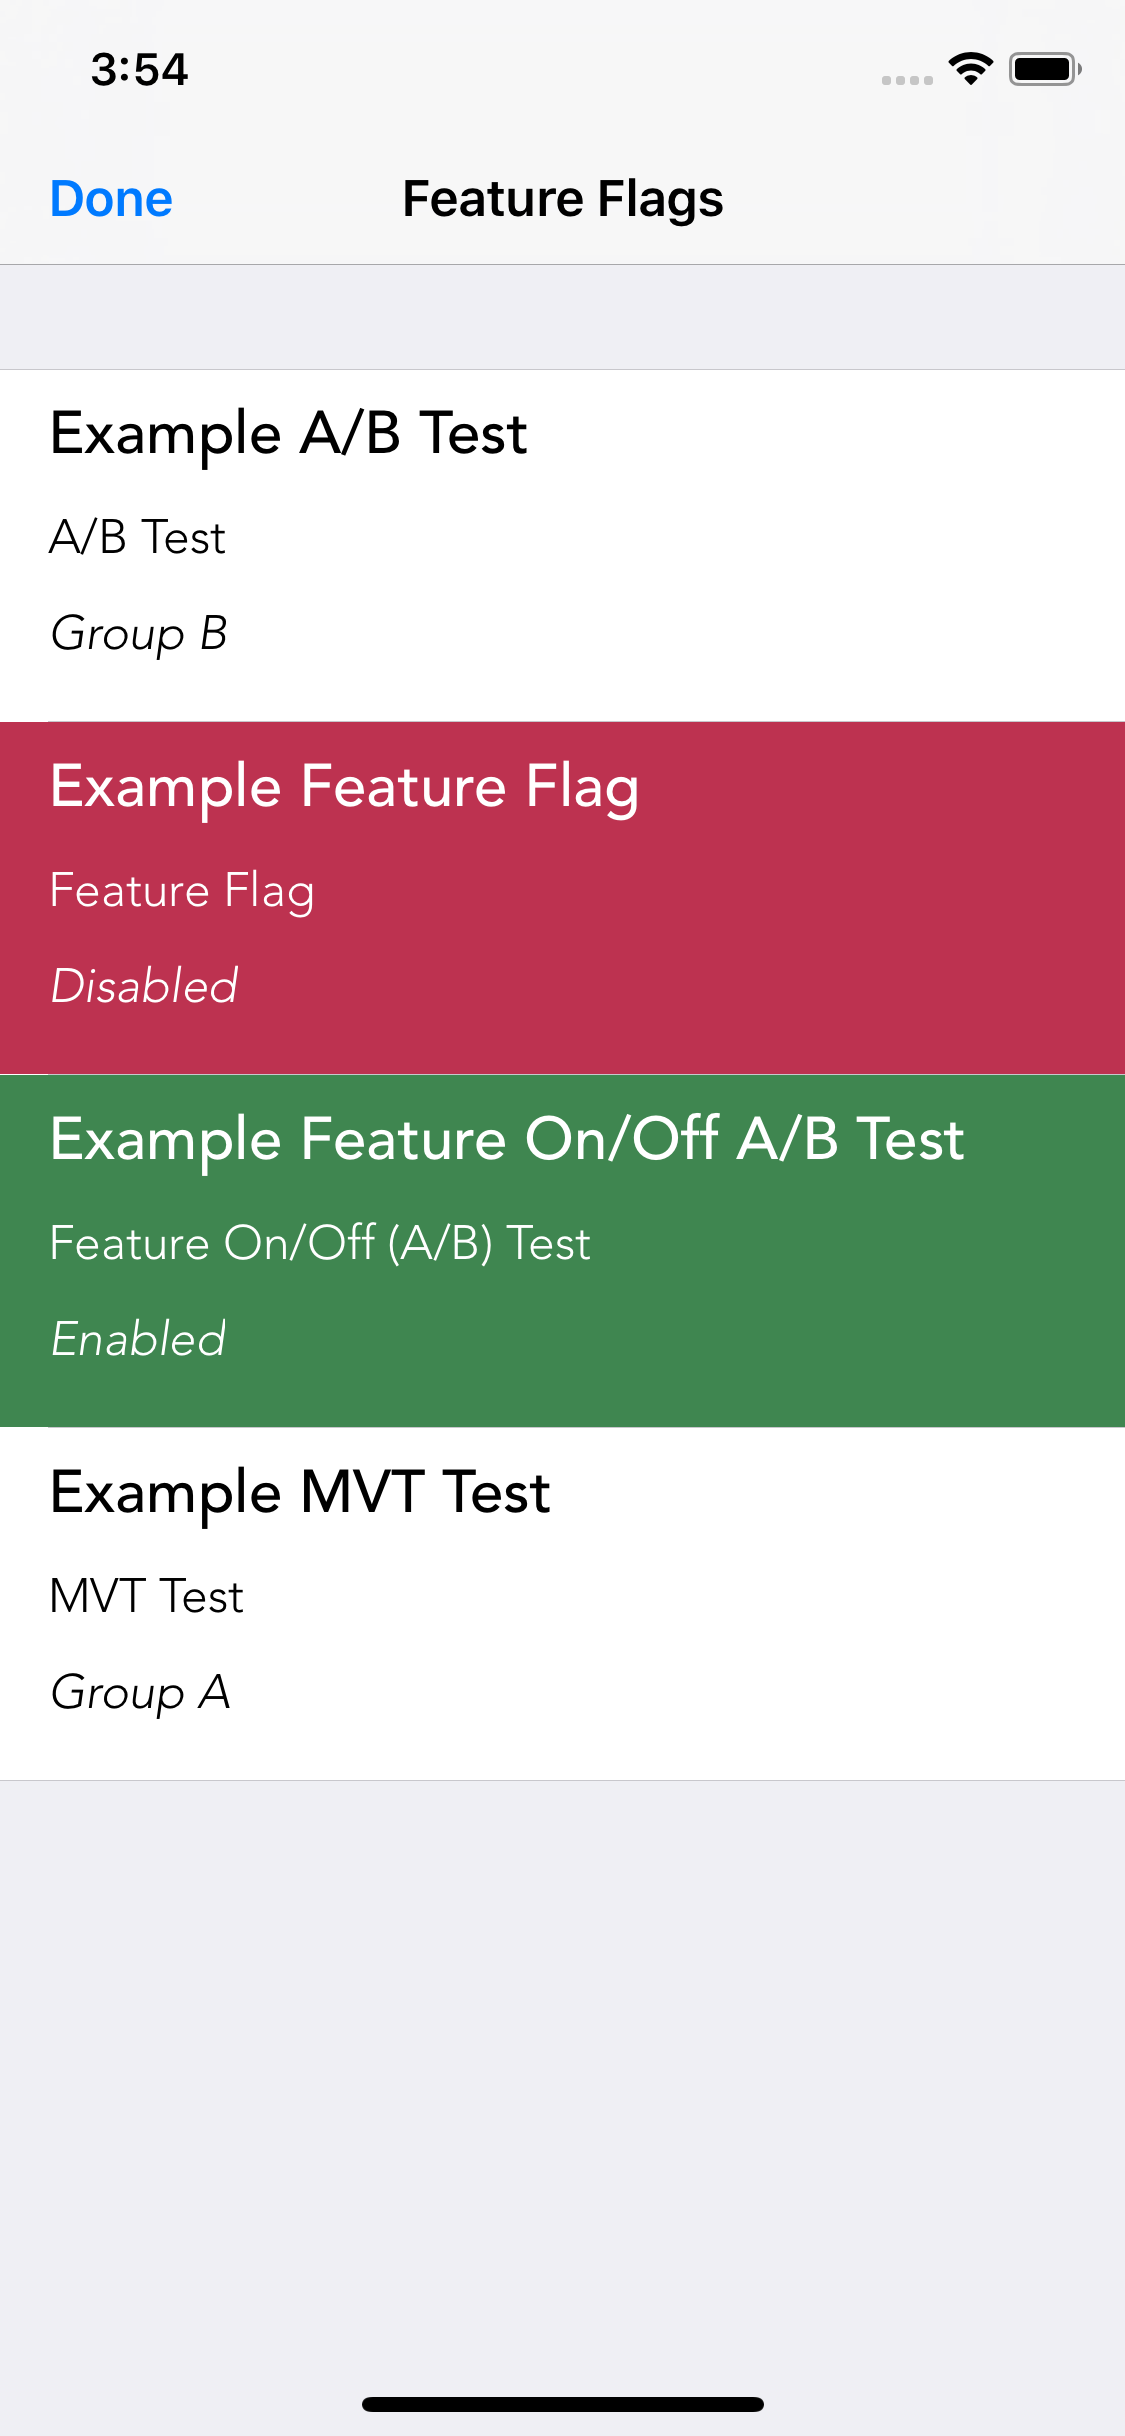 FeatureFlagsViewController